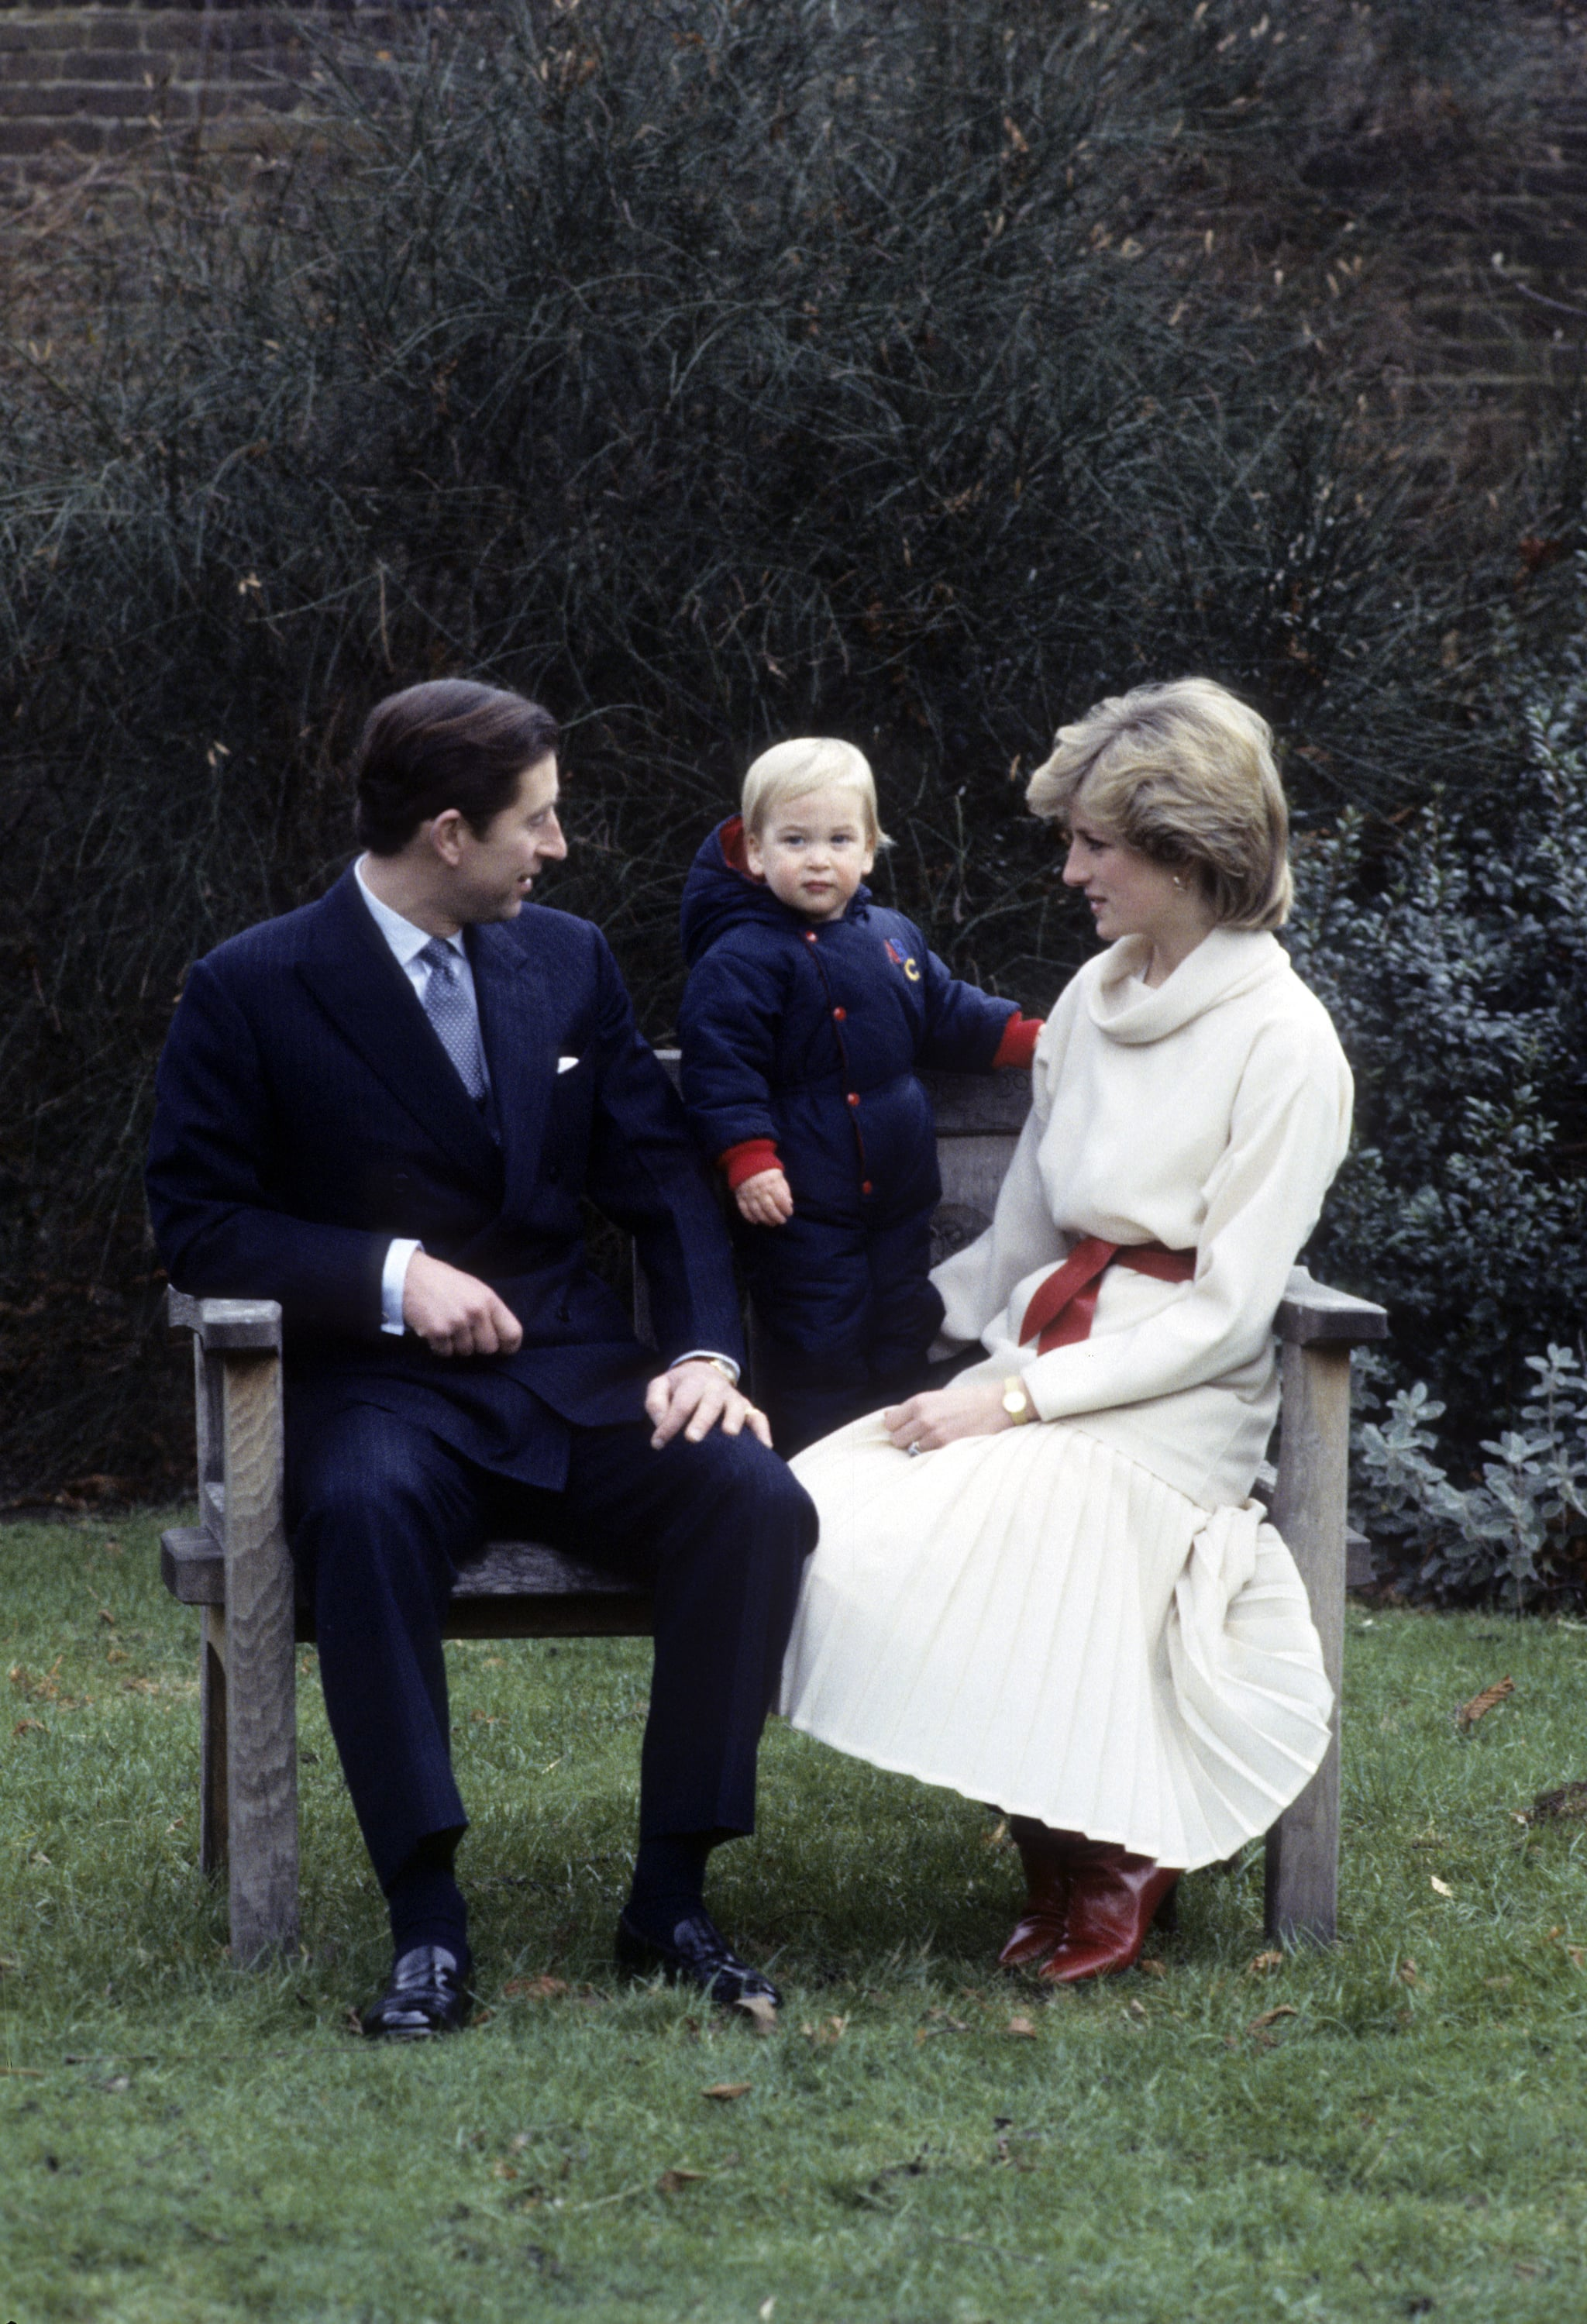 prince charles and princess diana had a portrait session with a young see prince william and kate middleton as kids popsugar celebrity photo 16 prince charles and princess diana had a